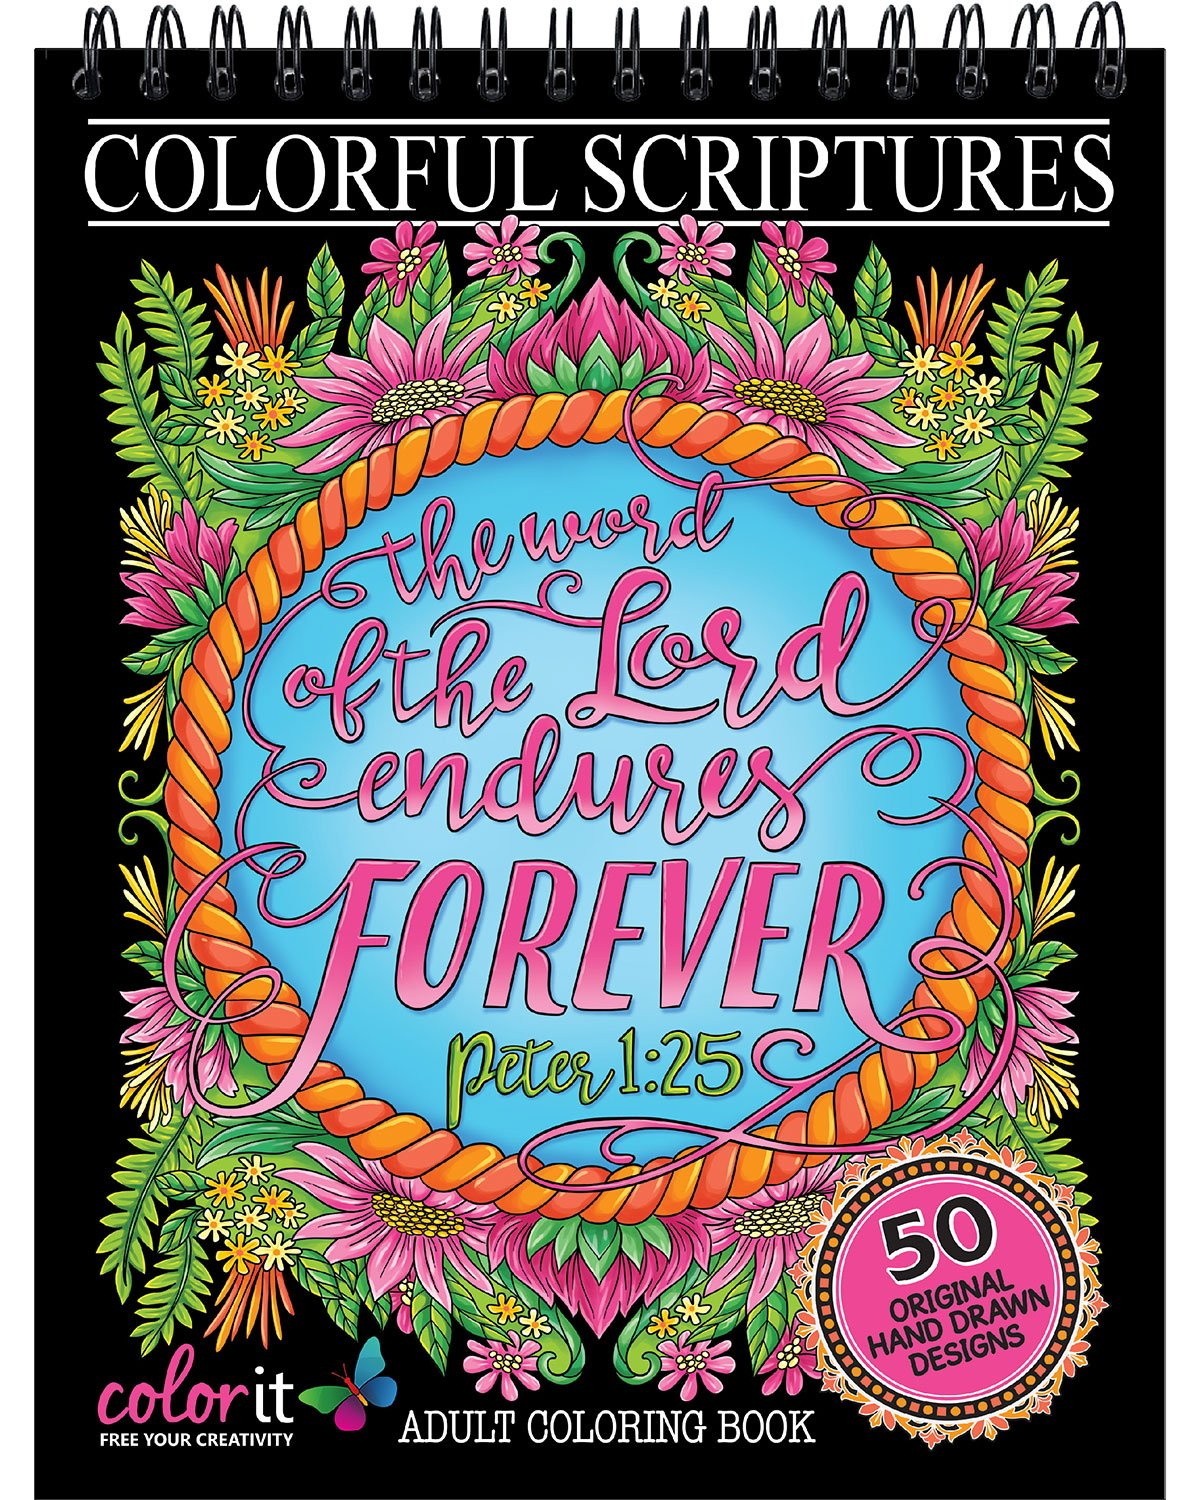 Colorful Scriptures Christian Adult Coloring Book - Features 50 Original Hand Drawn Biblical Designs Printed on Artist Quality Paper, Hardback Covers, Spiral Binding, Perforated Pages, Bonus Blotter by ColorIt